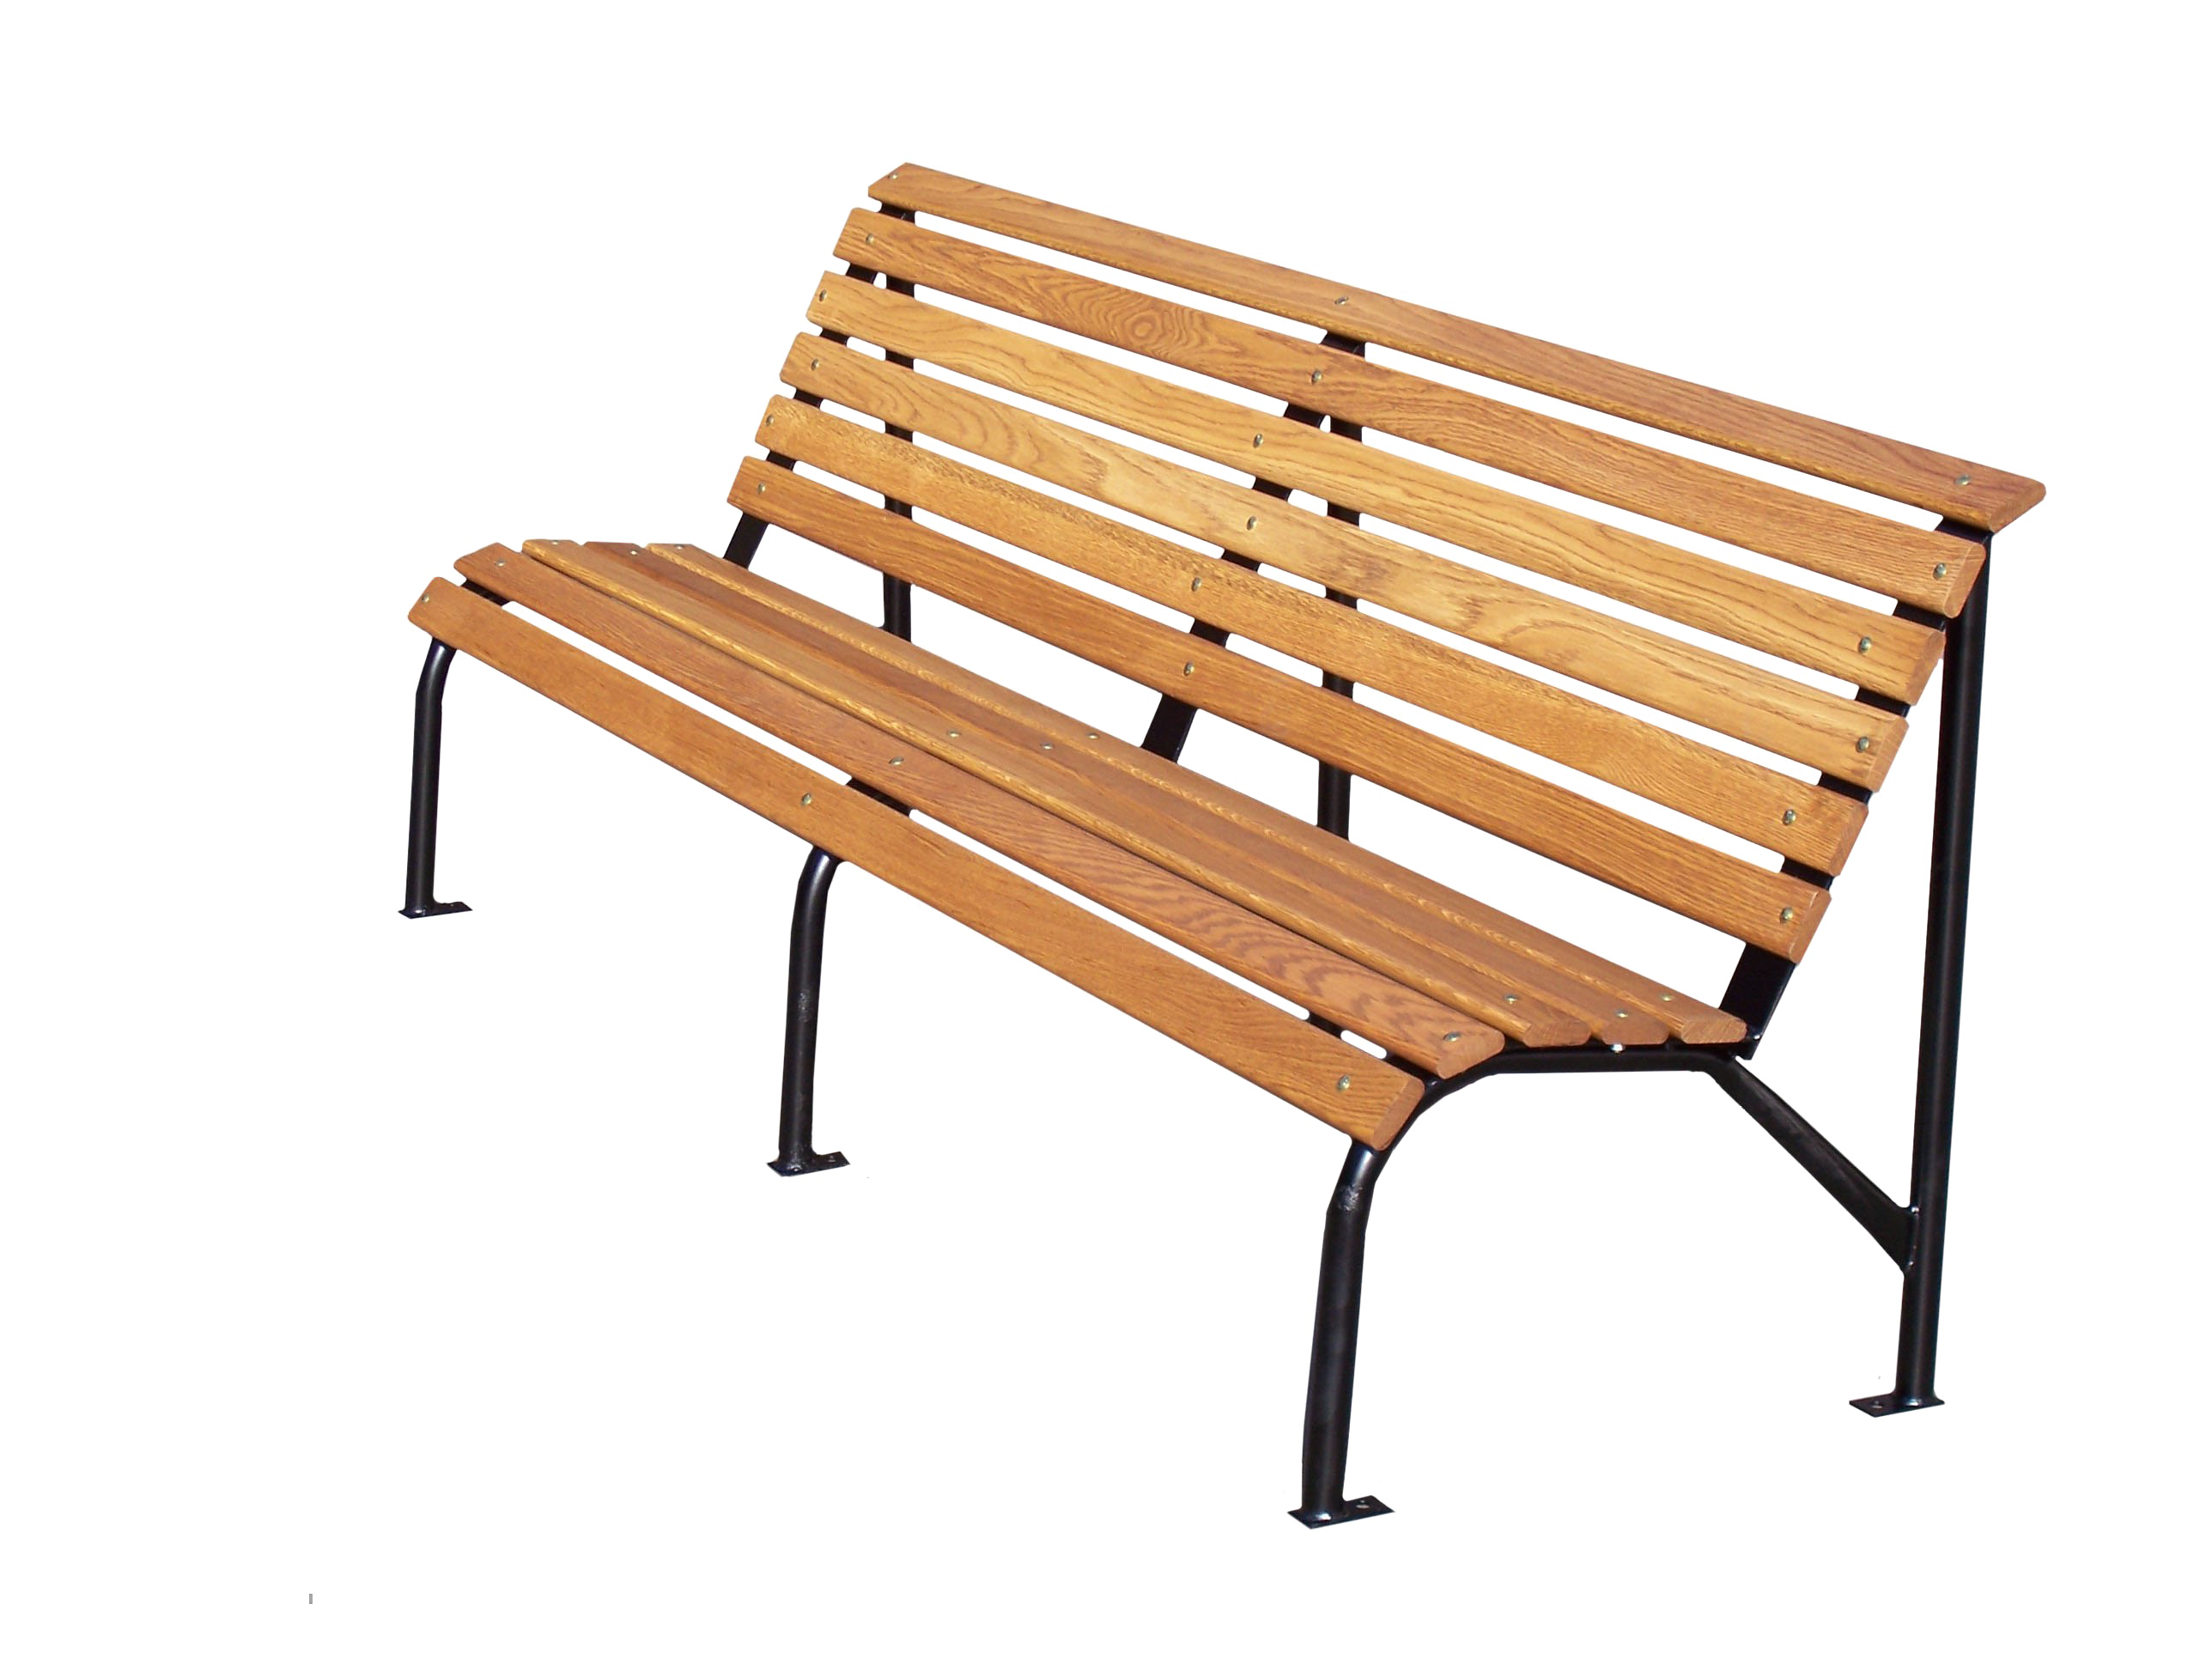 Bench Png & Free Bench.png Transparent Images #9517.